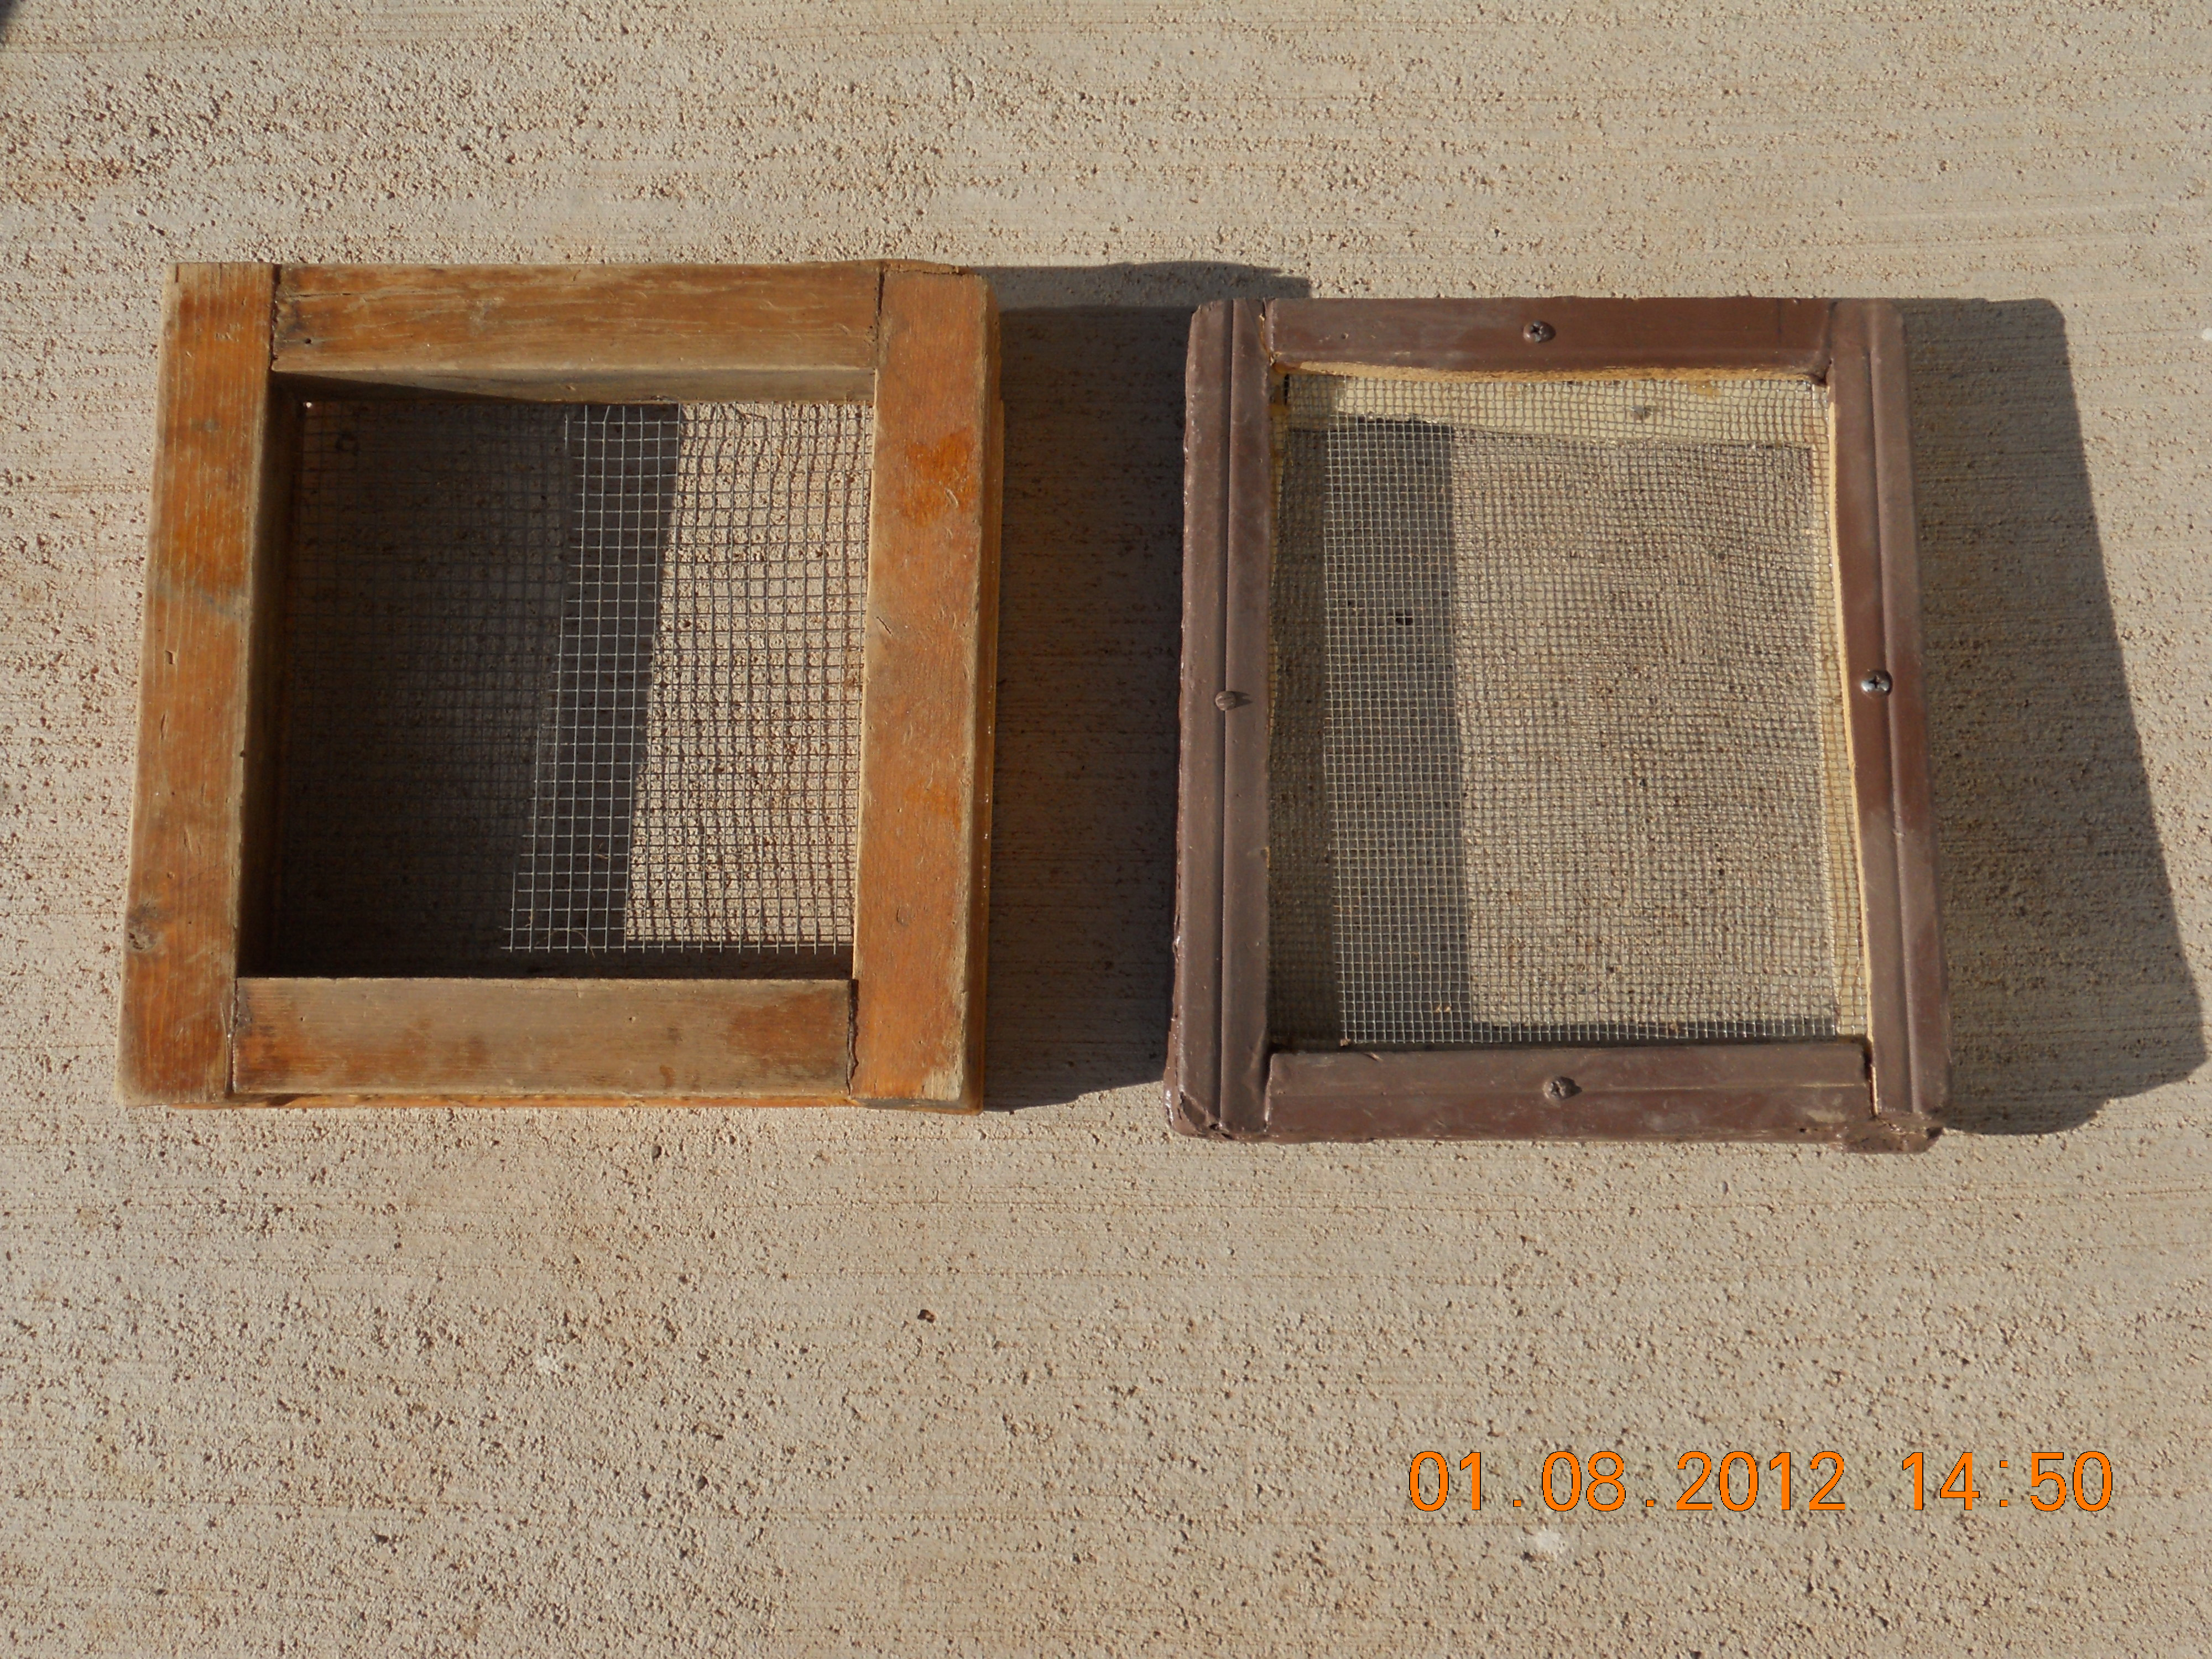 A HOME-MADE ROCKER BOX FOR GOLD PROSPECTING